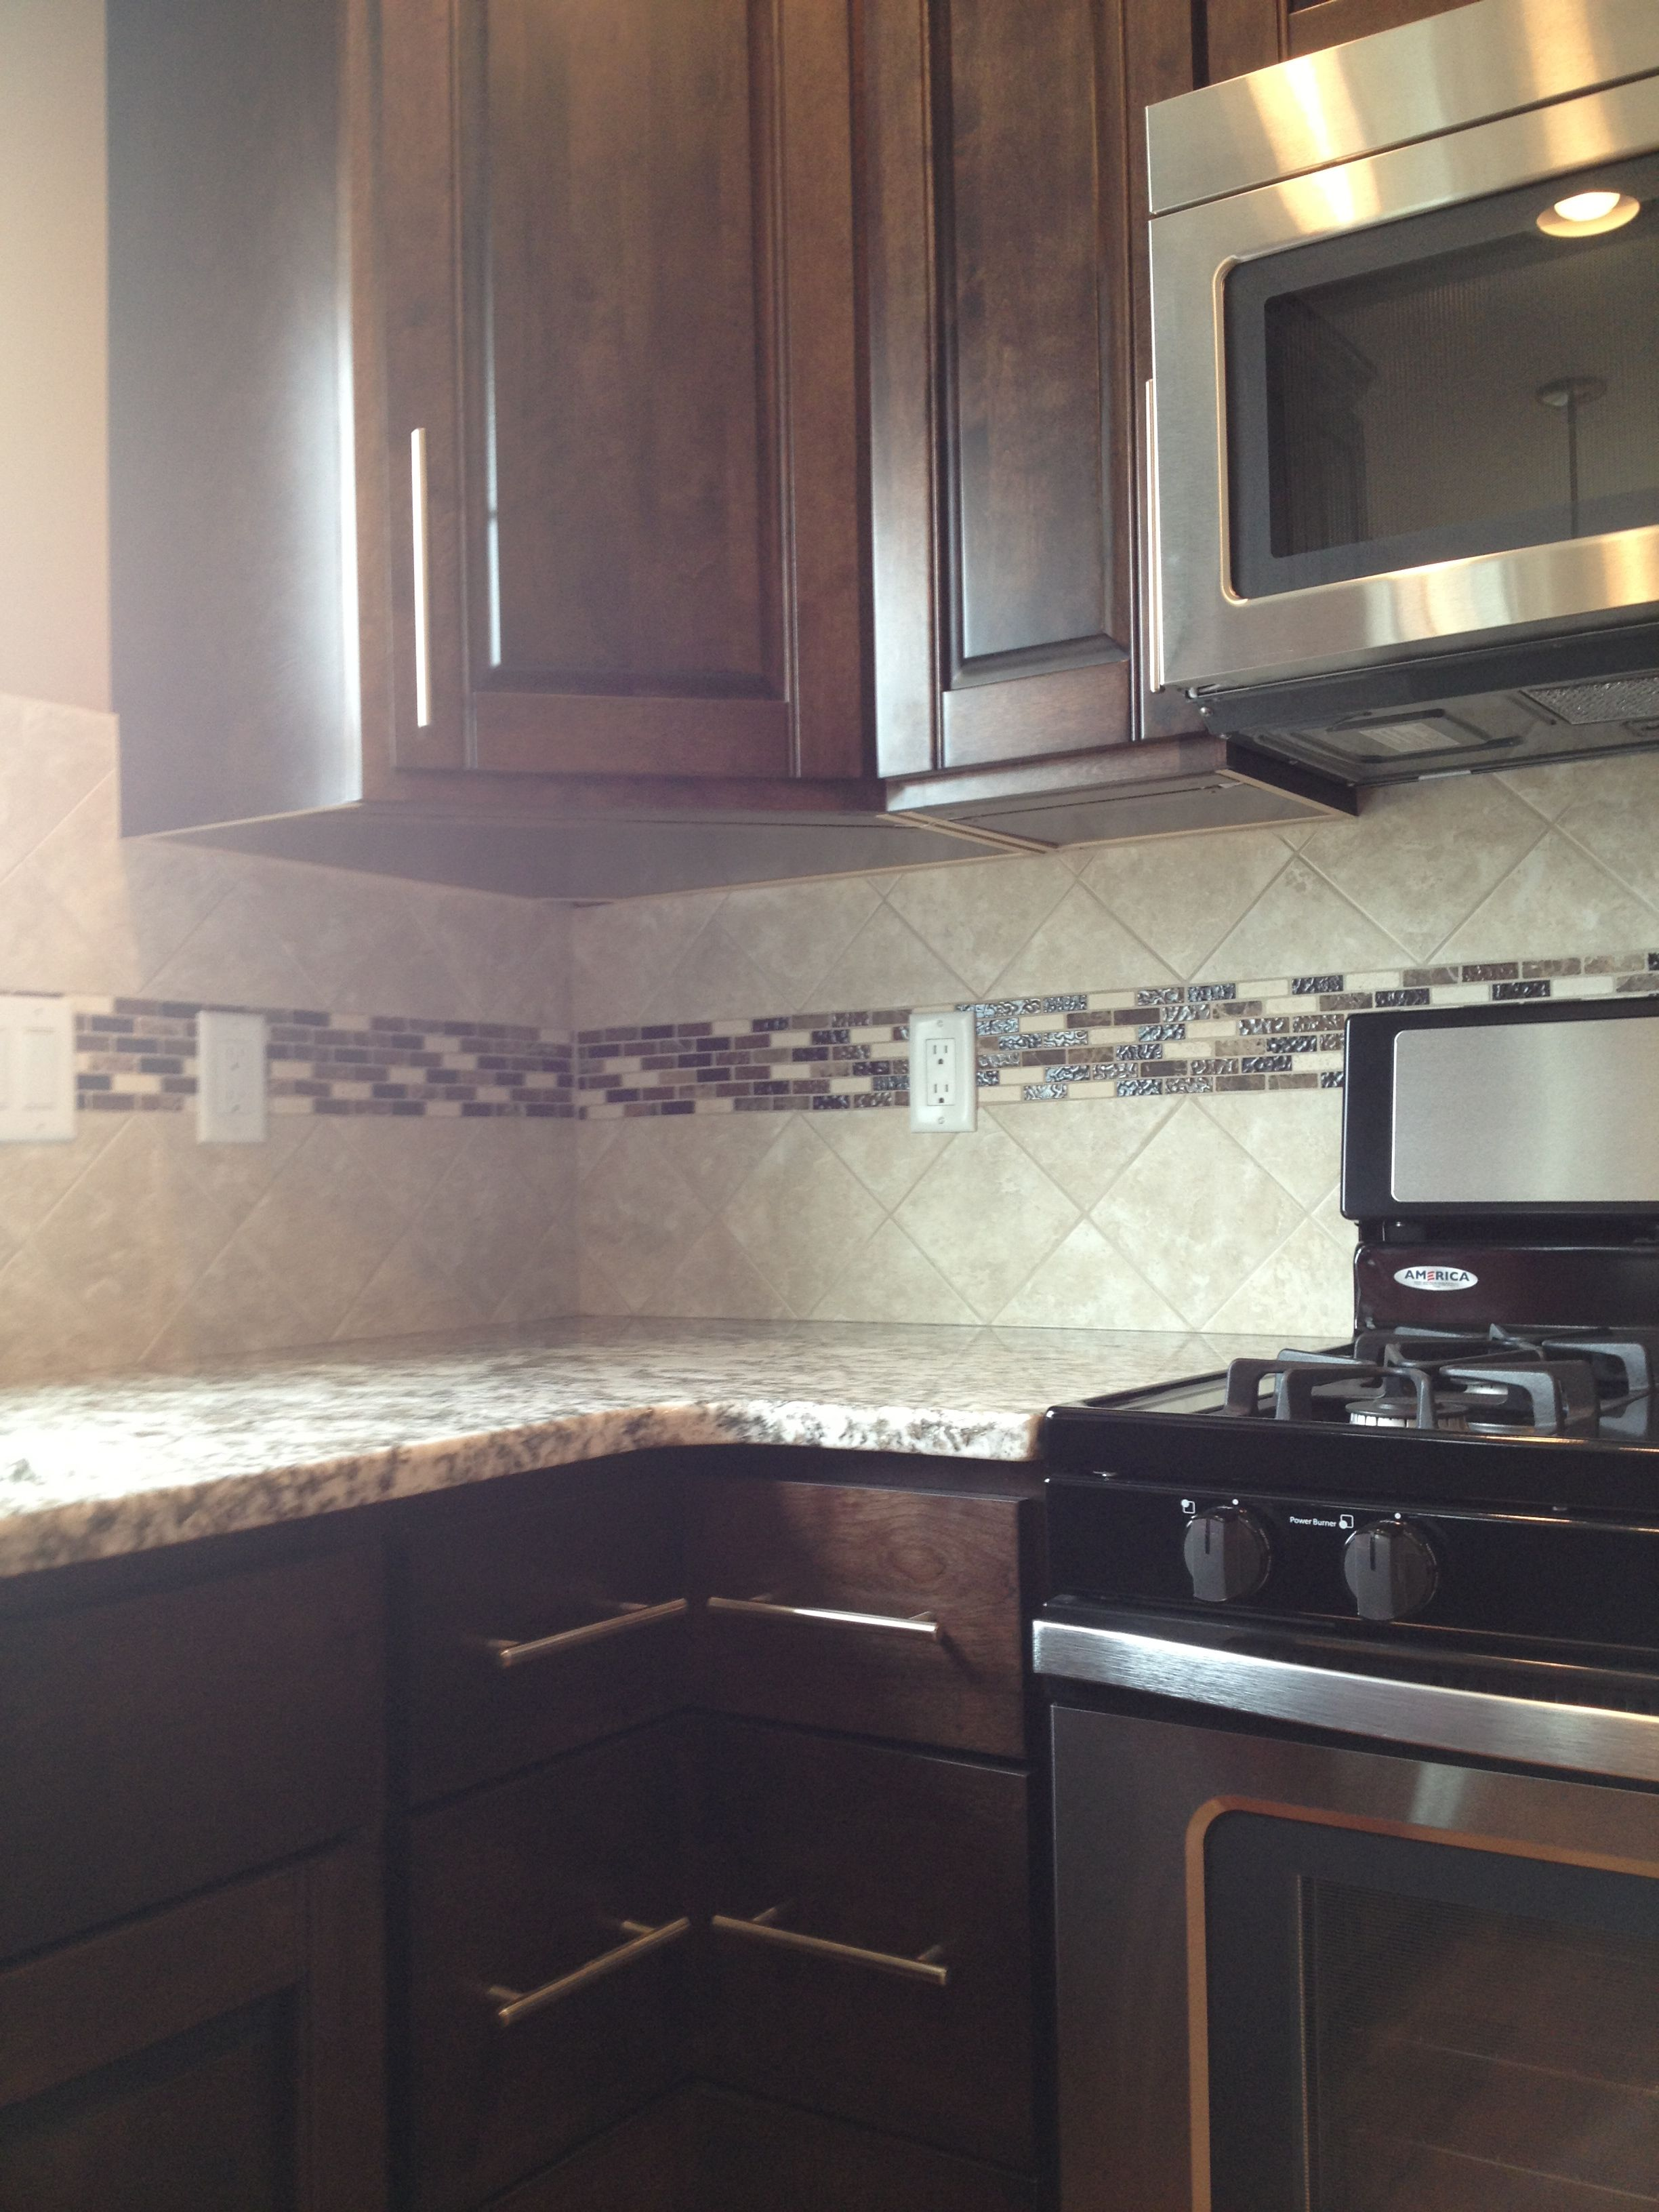 Kitchen Backsplash With Accent Strip Design By Dennis Pinterest Kitchen Backsplash